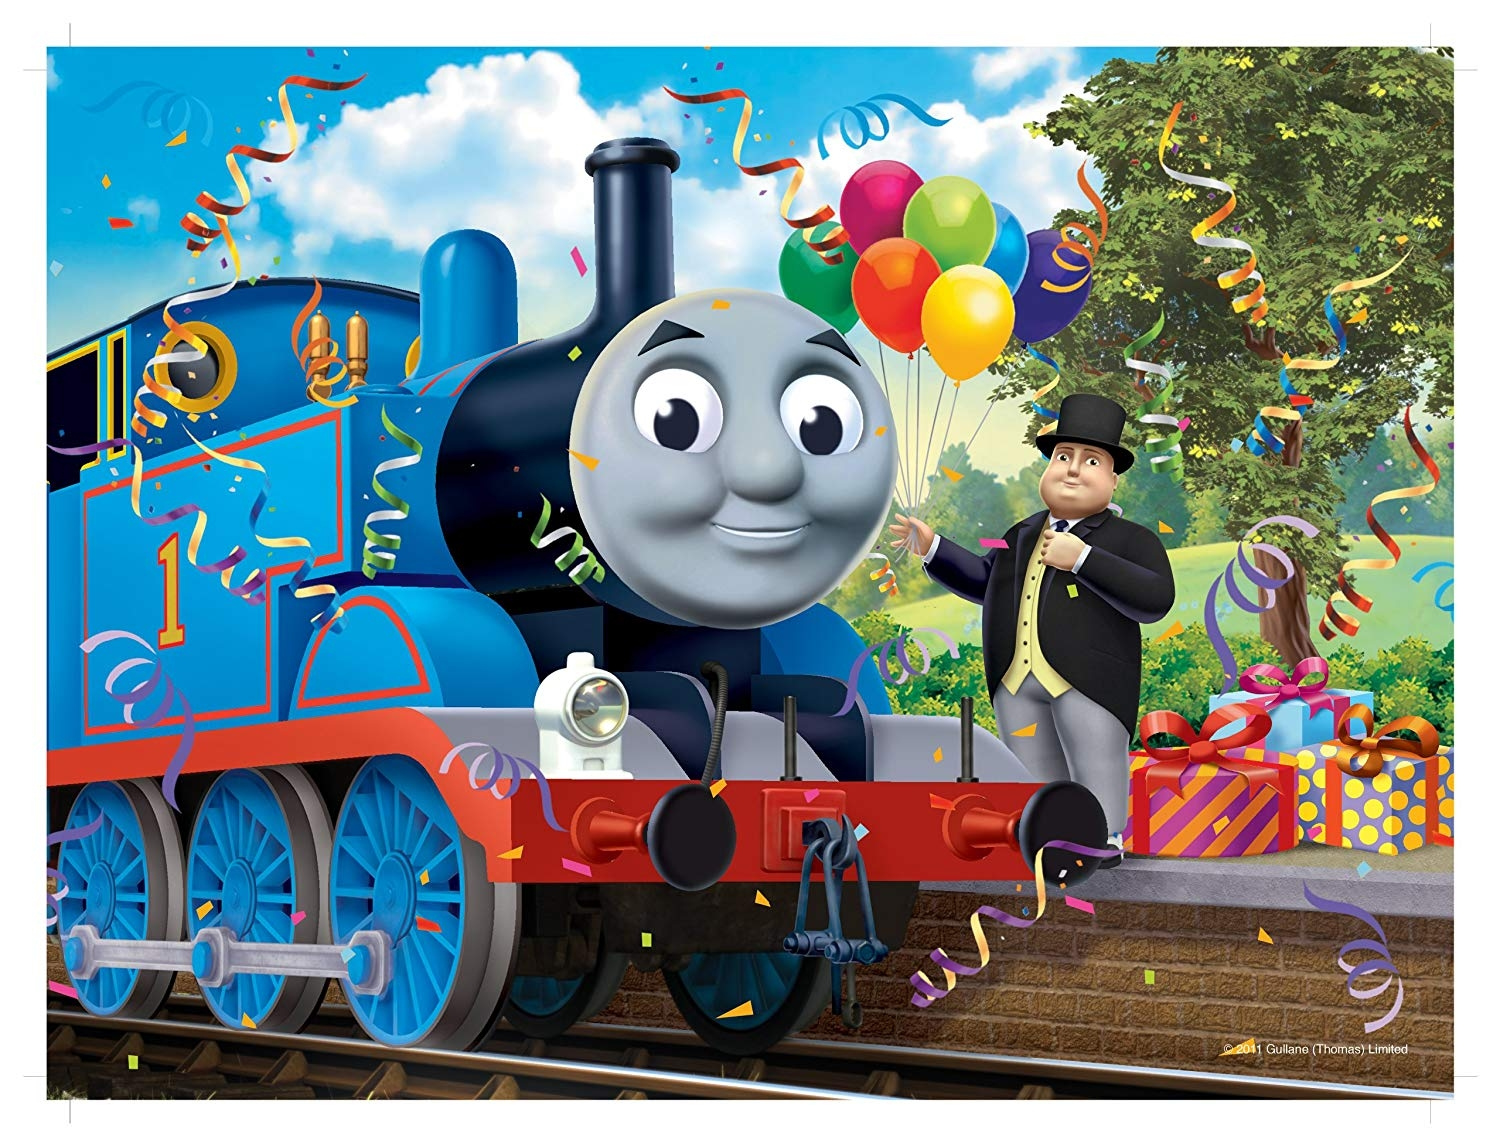 Thomas The Tank Engine Wallpaper Posted By Samantha Tremblay